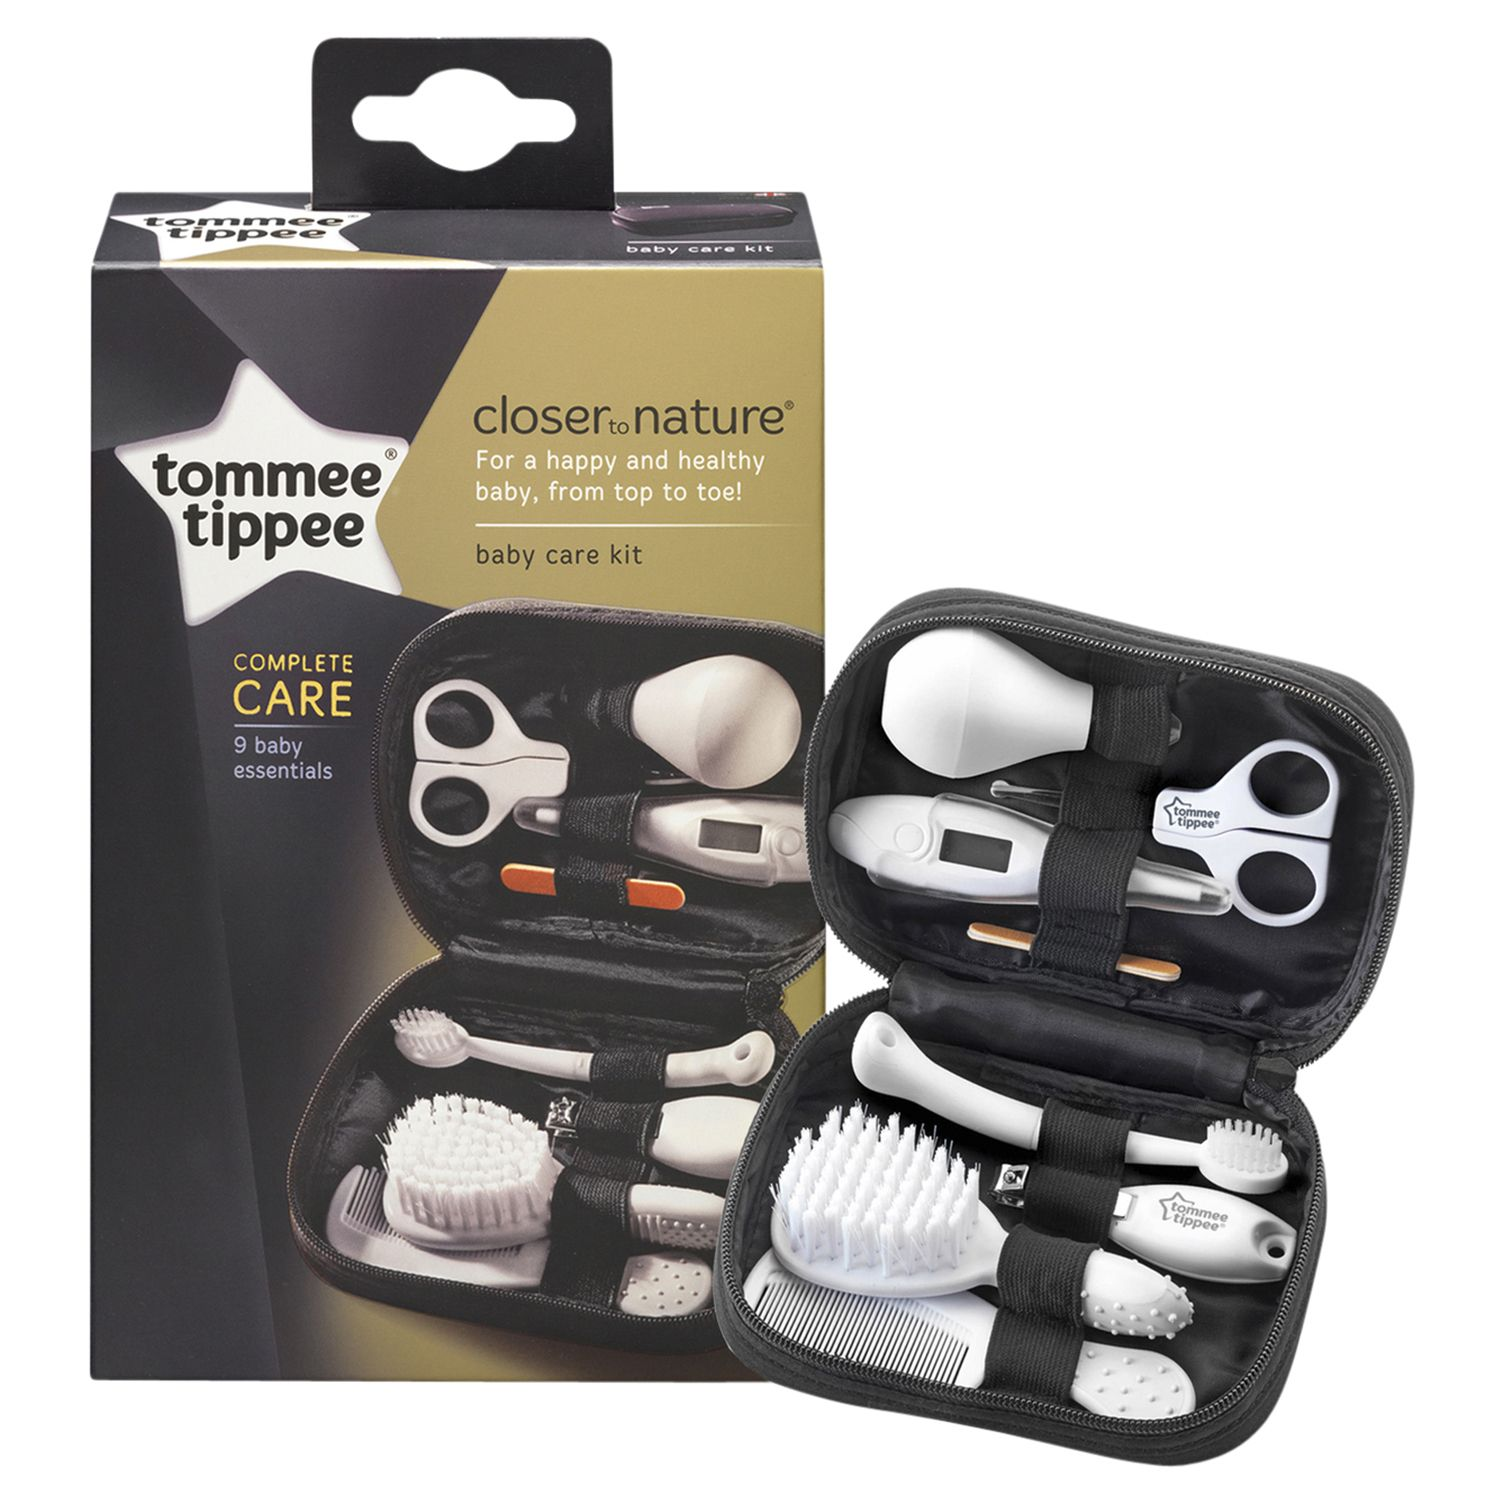 Tommee Tippee Baby Healthcare Kit